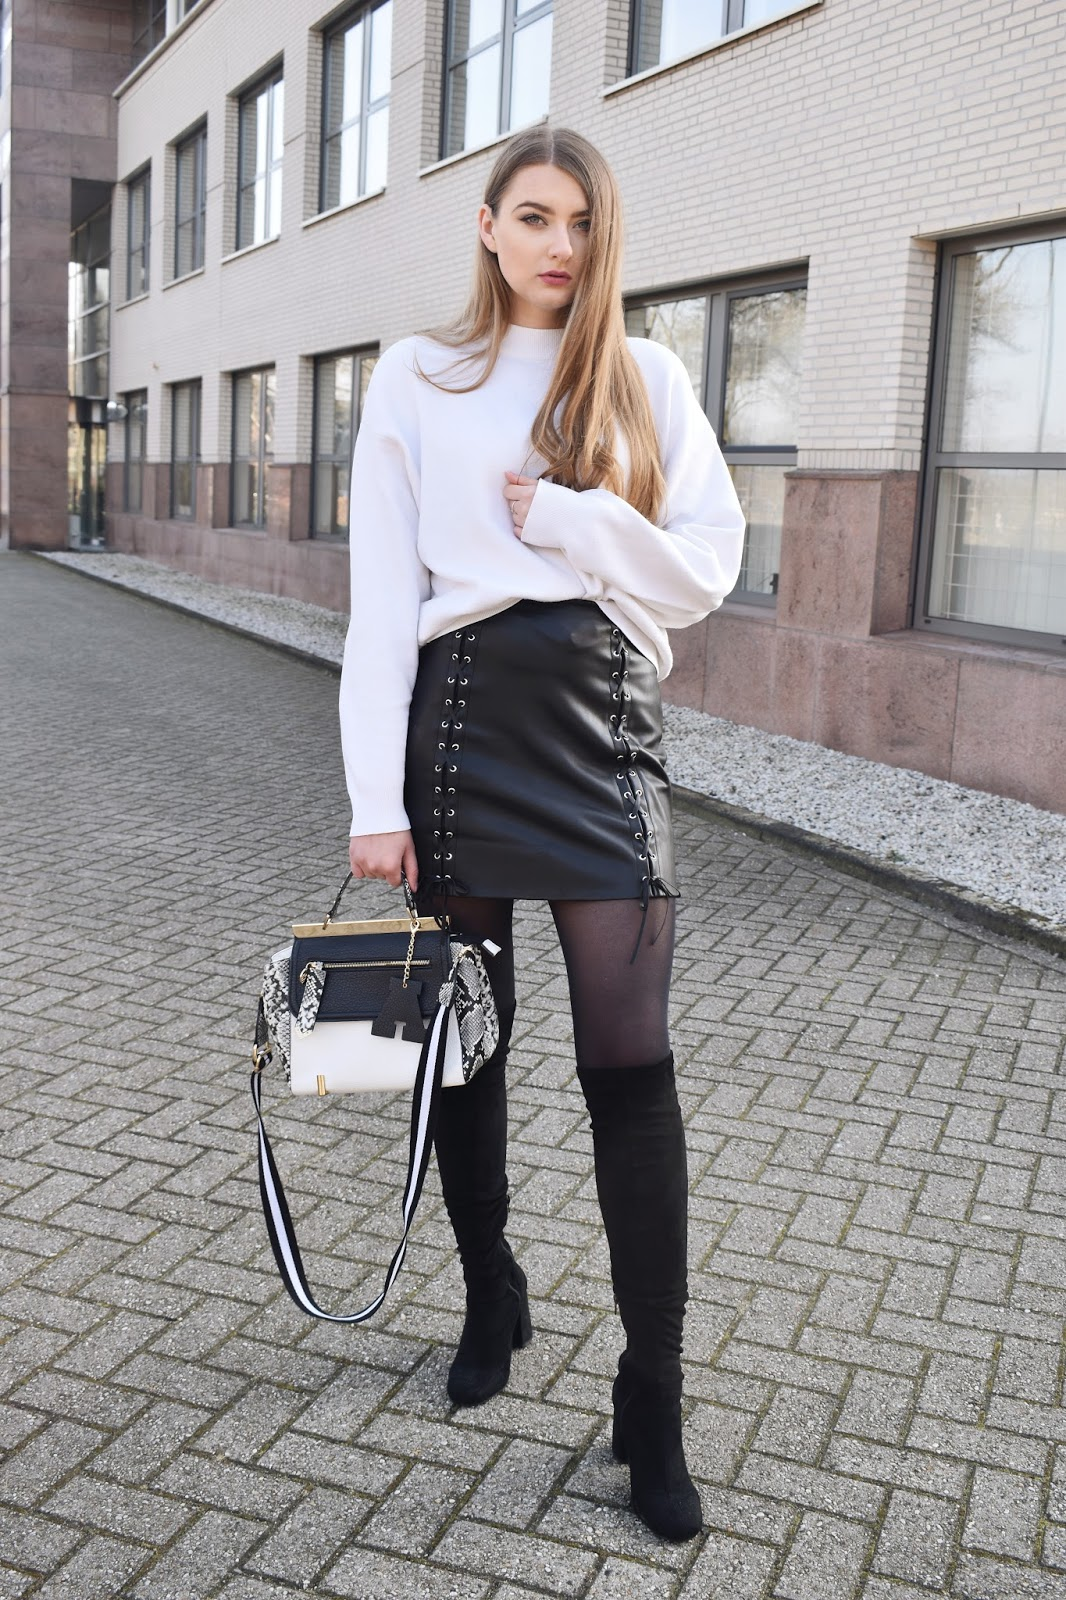 HOW TO WEAR LEATHER SKIRT